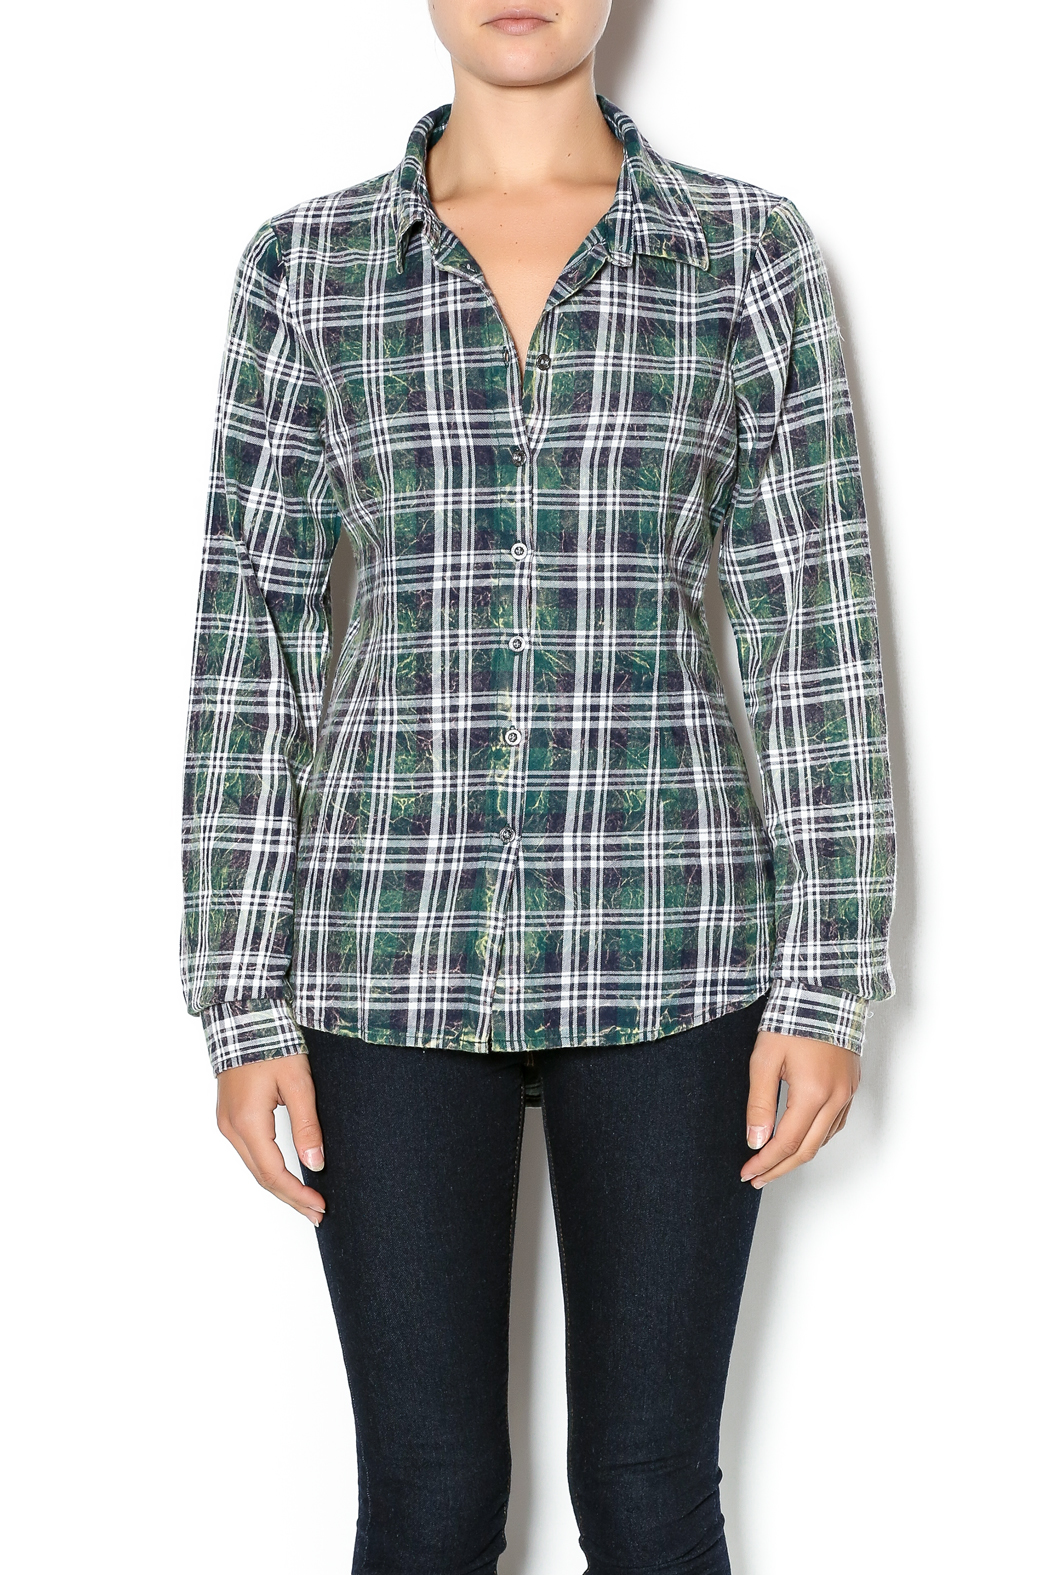 White Crow Olive Night Plaid Top From Austin By Sage